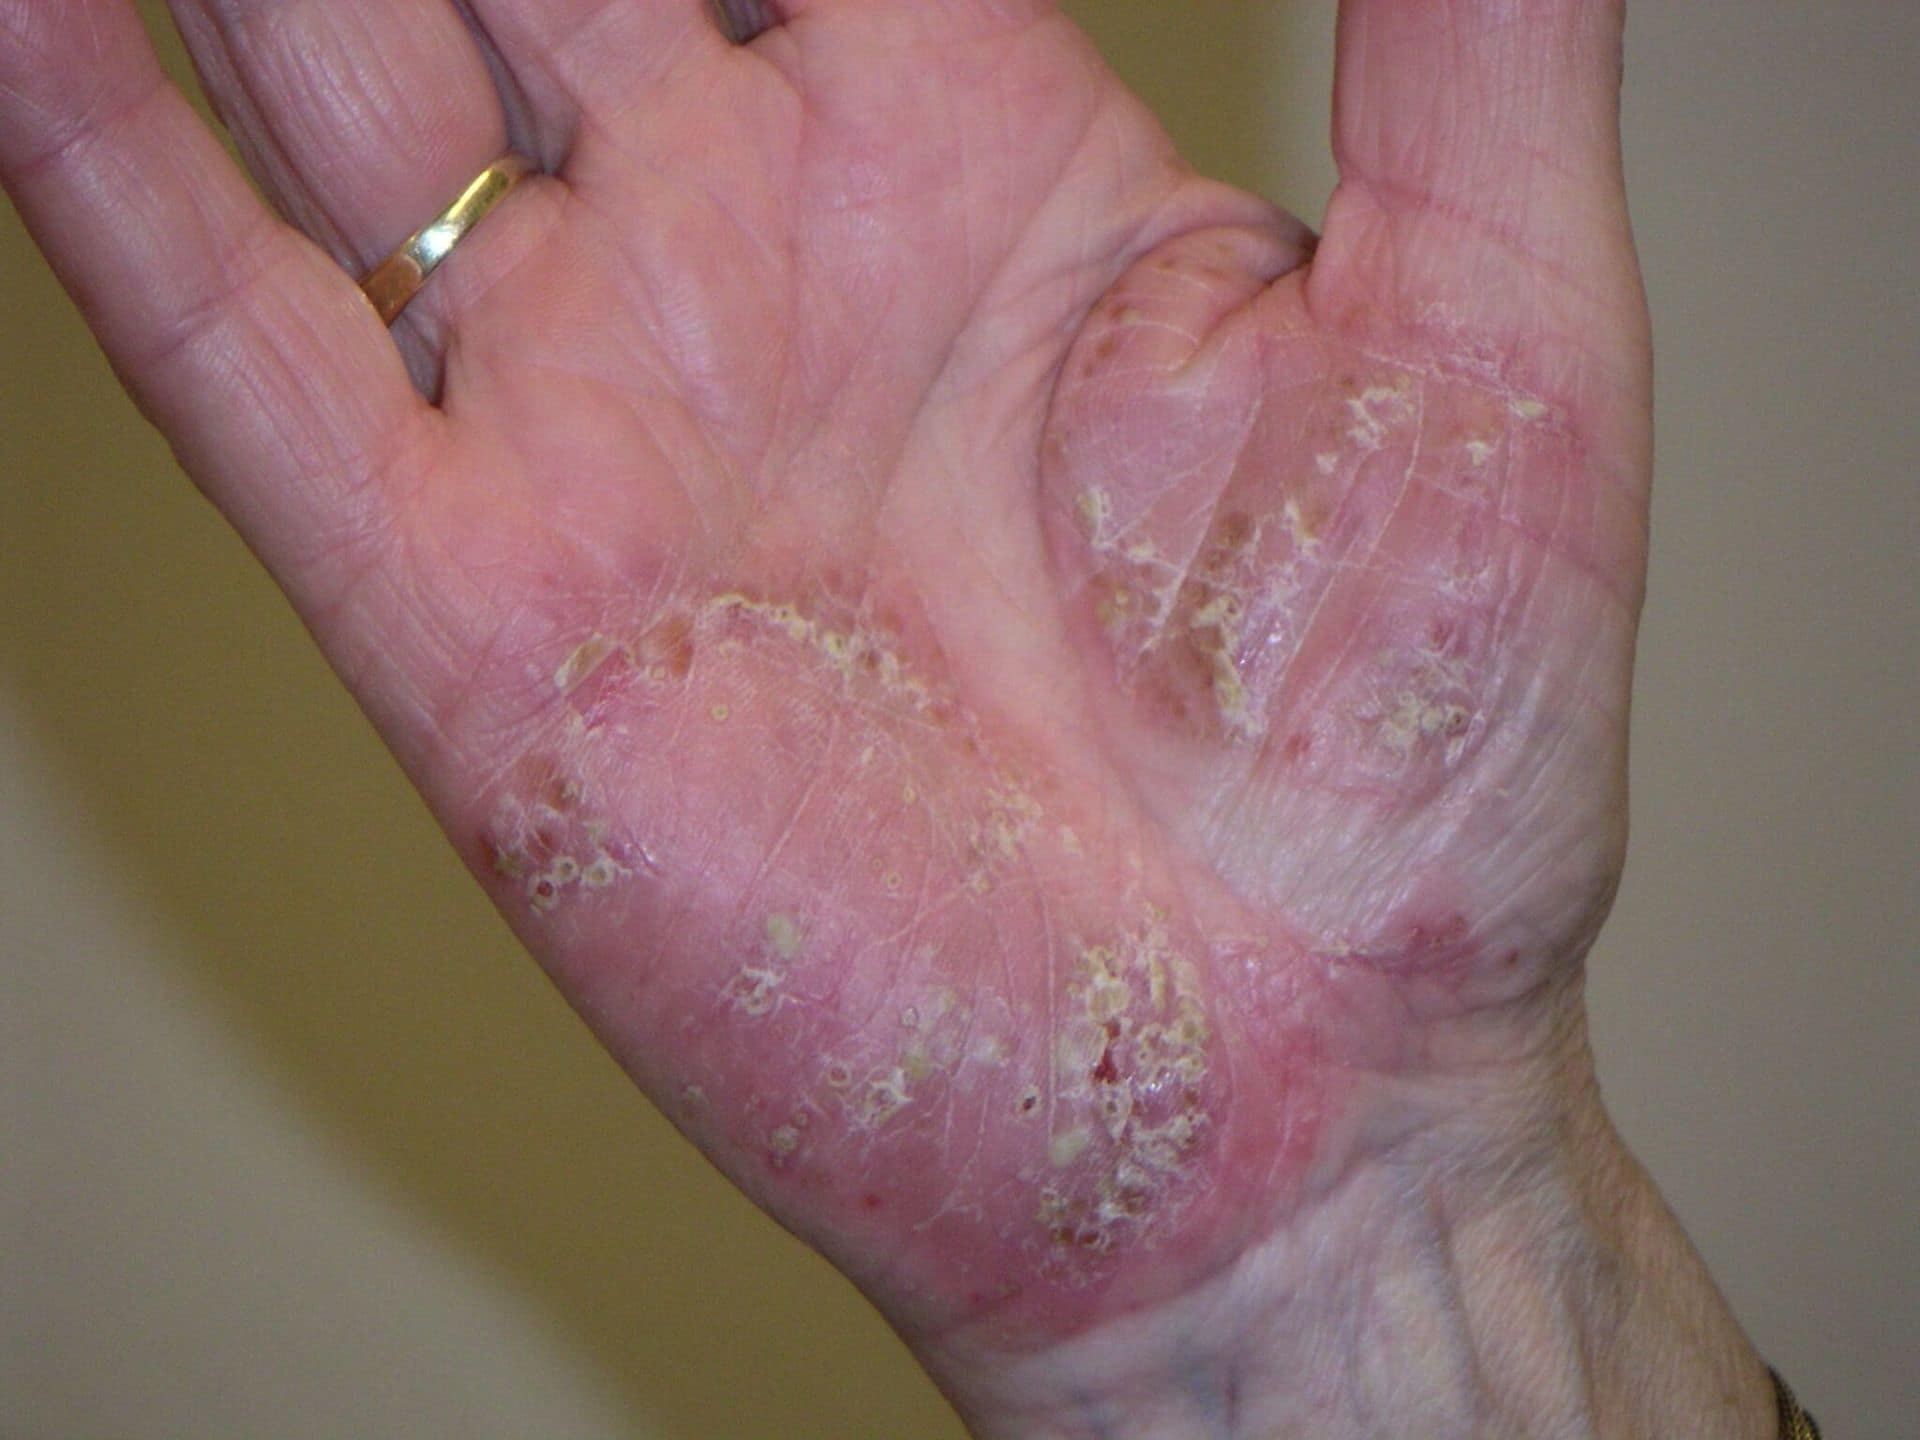 Psoriatic Arthritis Symptoms, Pictures & Diet